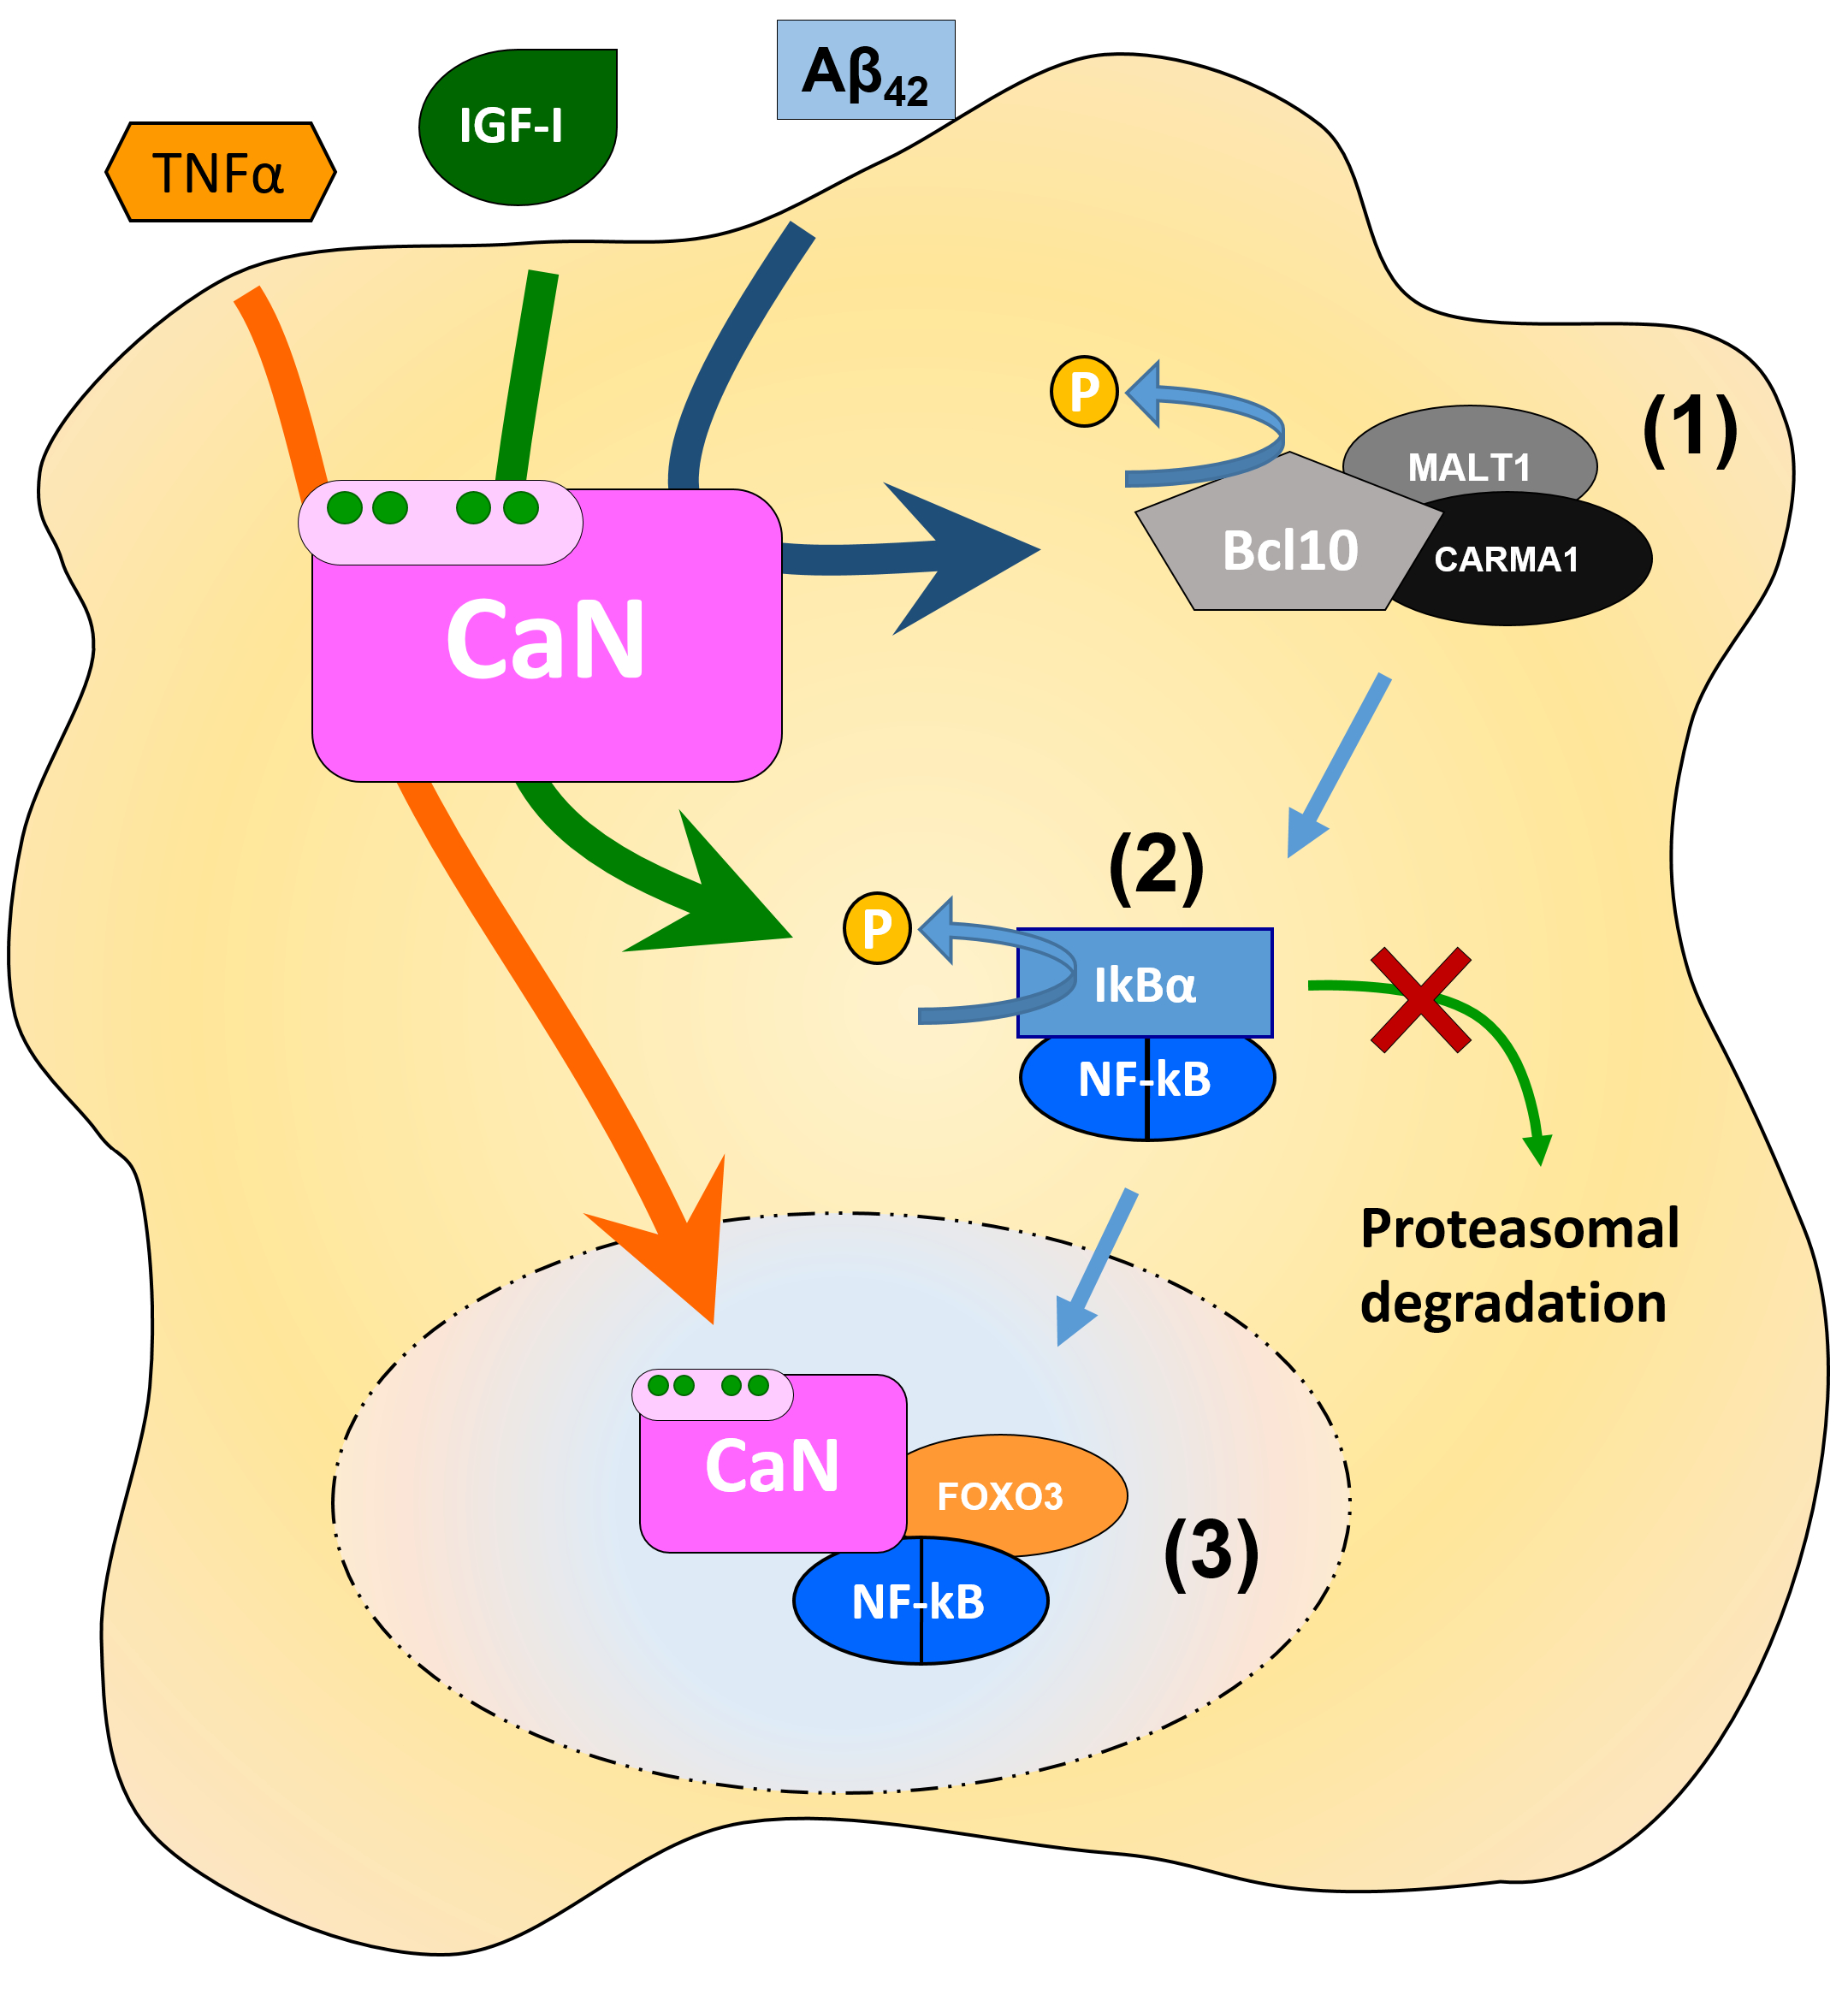 Figure 2. Schematic illustration of specific points in the NF-kB astroglial signalling cascade in which CaN can intervene  (1) CaN dephosphorylates Bcl10, which potentiates NF-kB signalling in hippocampal cultured astrocytes (Lim et al., 2013); (2) CaN dephosphorylates IkBα, thus precluding its degradation which results in the inhibition of NF-kB nuclear translocation (Pons & Torres-Aleman, 2000); (3) CaN, in complex with NF-kB and FOXO3, is required for TNFα-induced NF-kB nuclear translocation and activation of transcription both in vitro and in vivo(Fernandez et al., 2012)